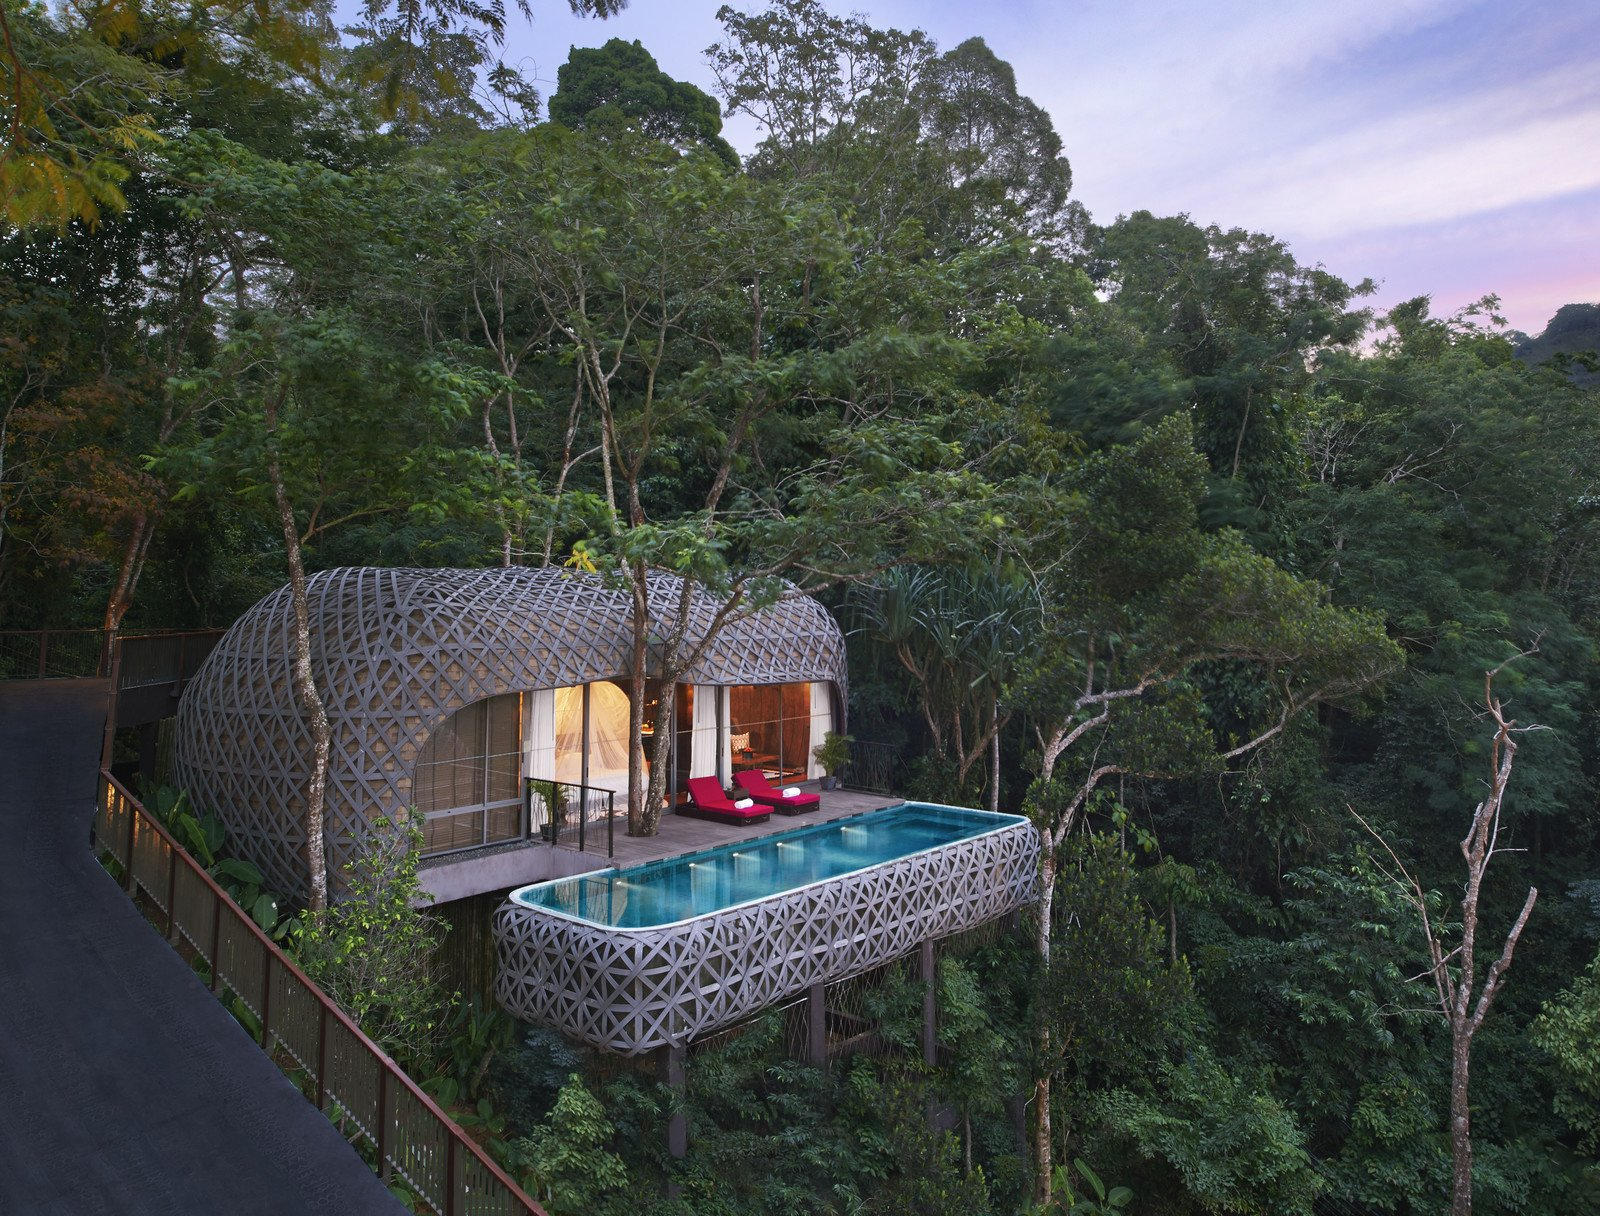 Photo 1 of 11 in Escape to the Jungle in One of These Modern Forested Retreats